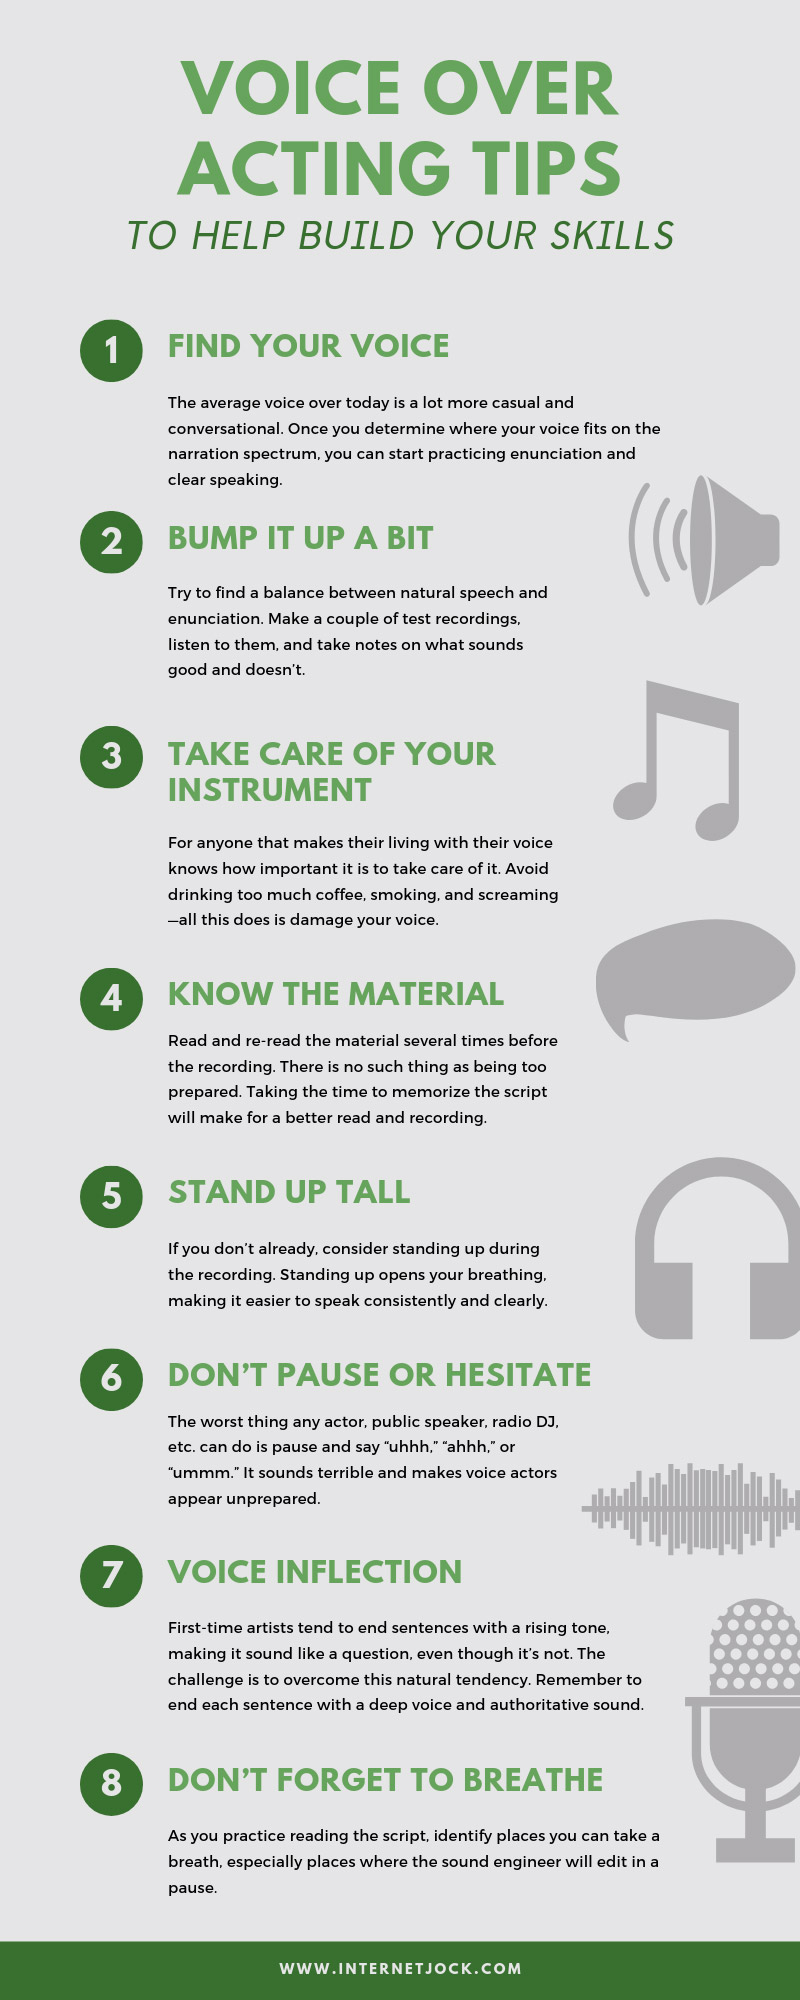 Voice Over Acting Tips to Help Build Your Skills